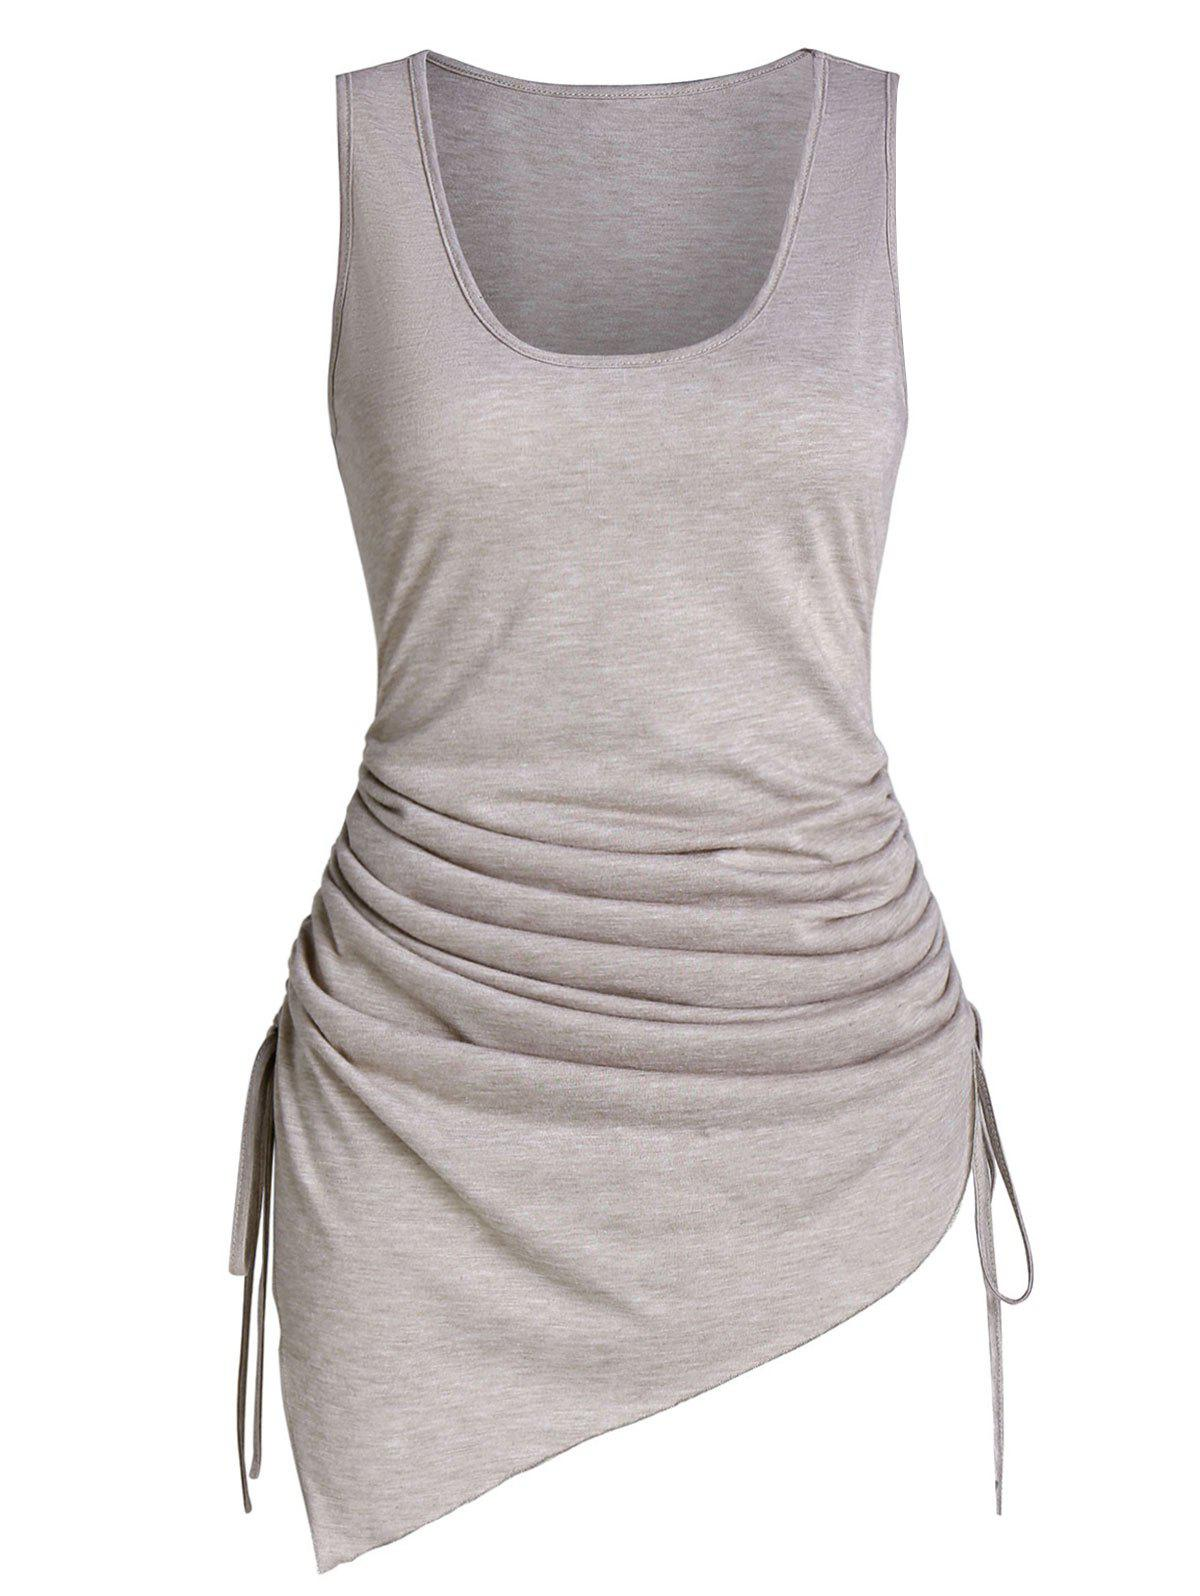 Chic Asymmetric Cinched Tank Top